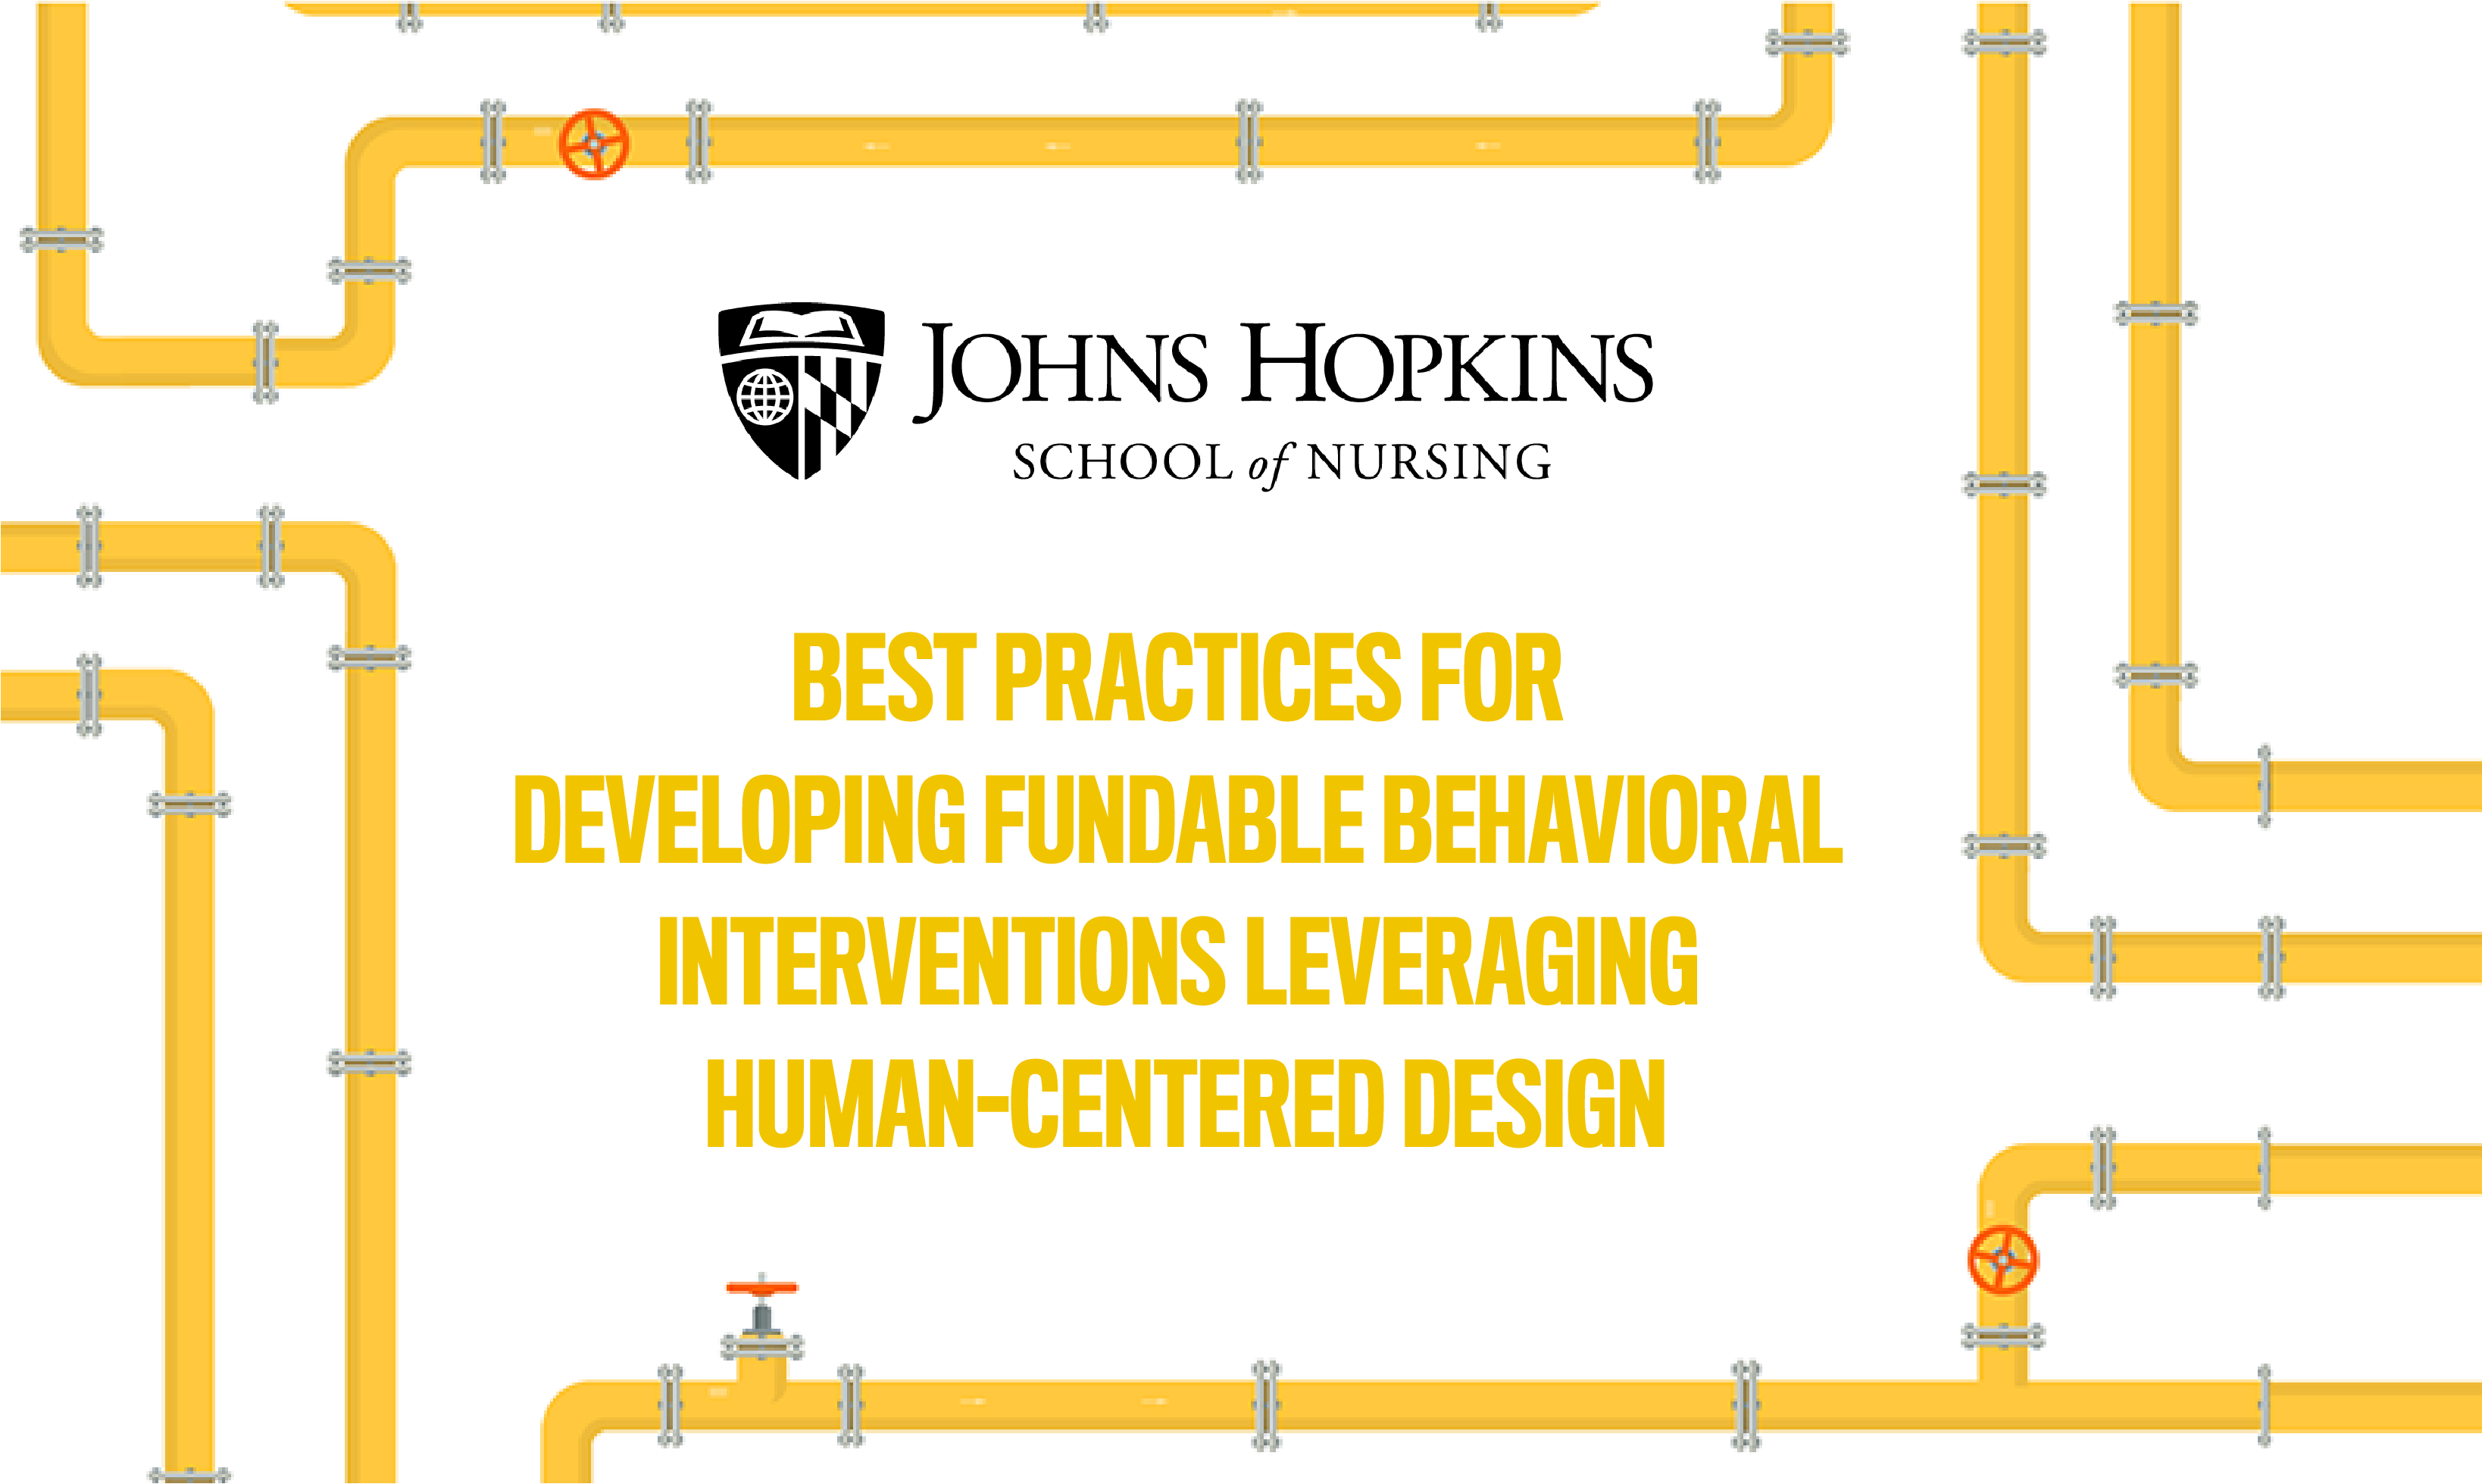 BEST PRACTICES FOR DEVELOPING FUNDABLE BEHAVIORAL INTERVENTIONS LEVERAGING HUMAN-CENTERED DESIGN